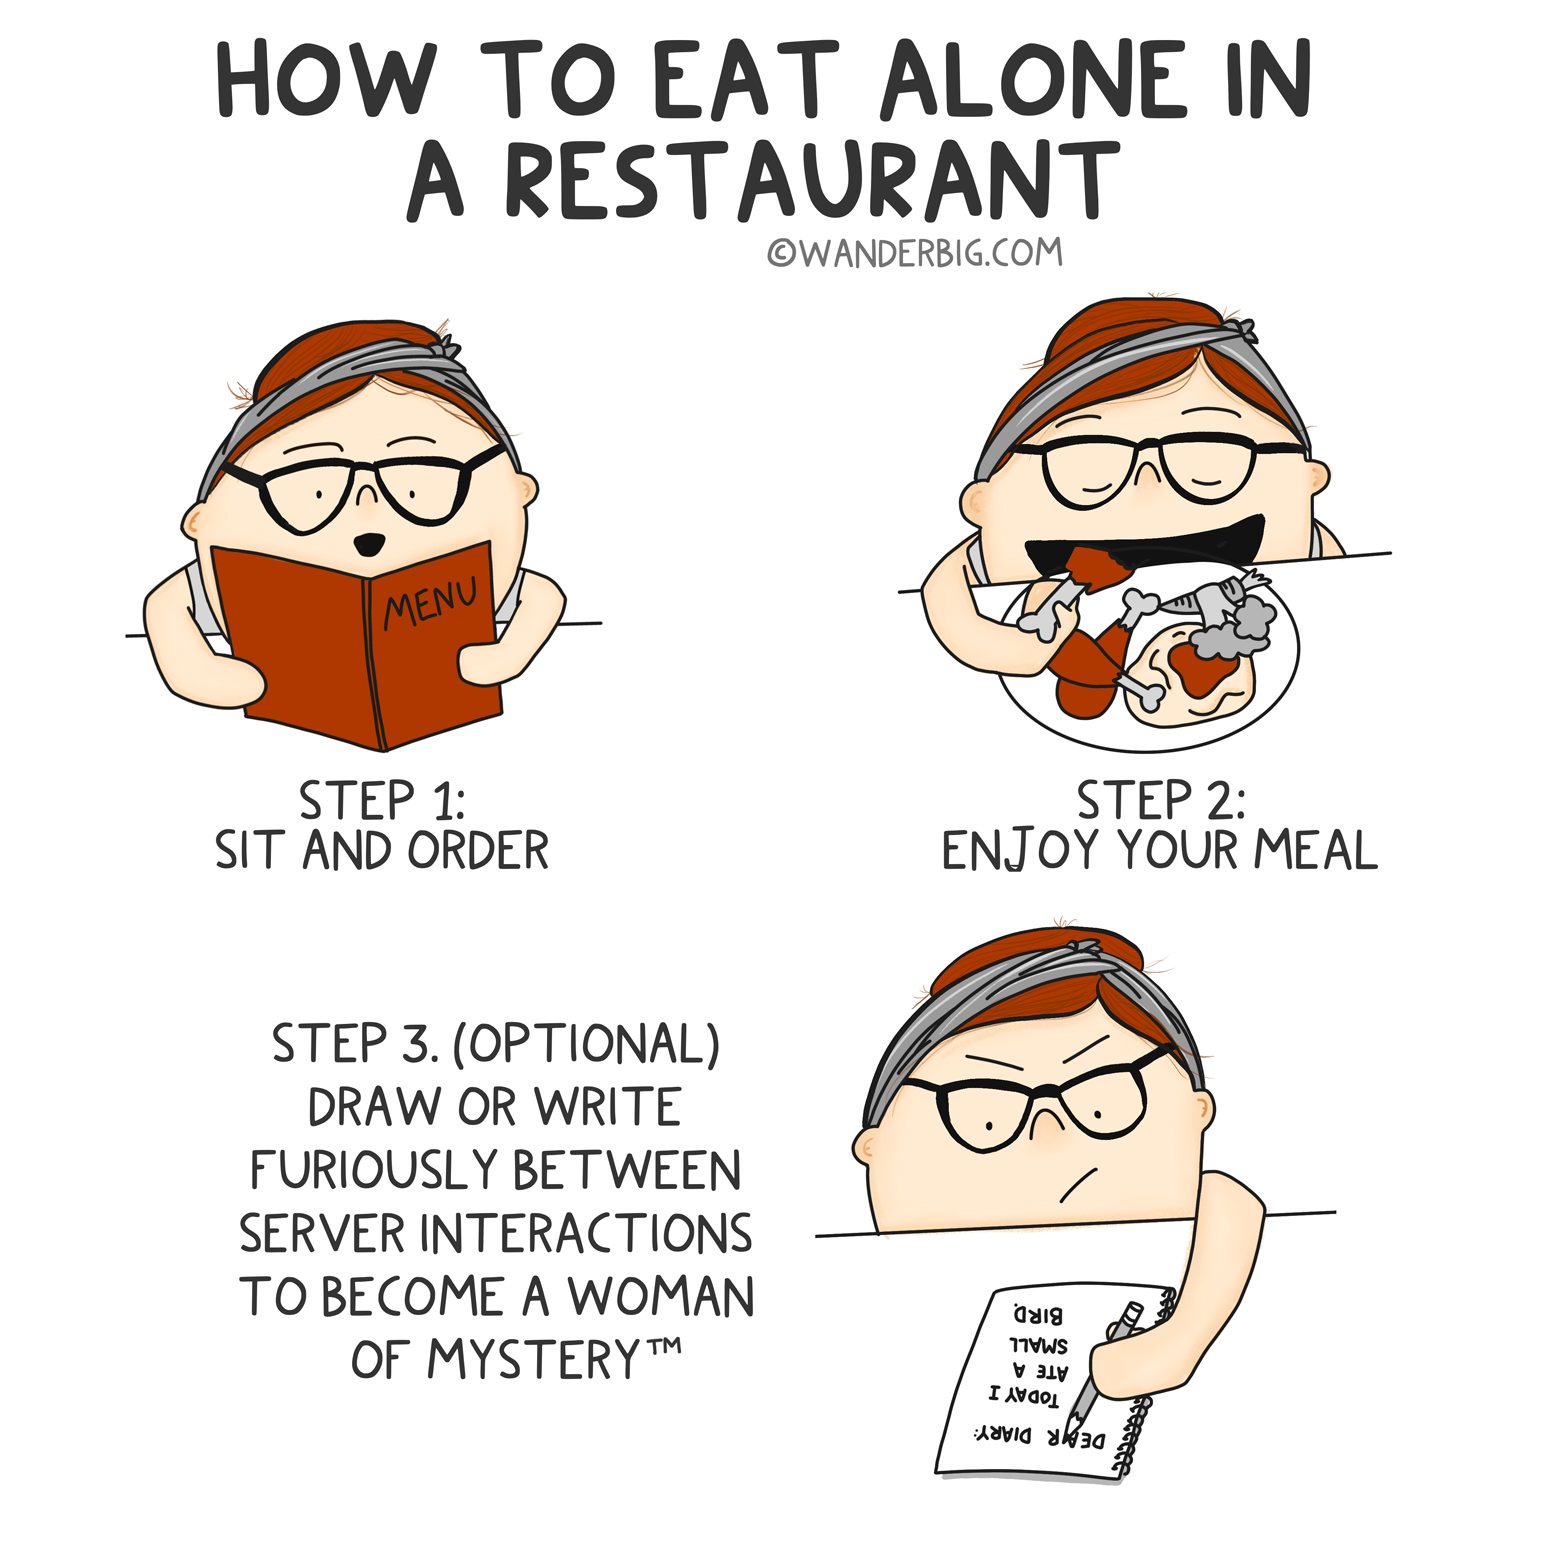 An illustration titled 'how to eat alone in a restaraunt' showing a cartoon figure ordering, eating, and writing in a notebook.